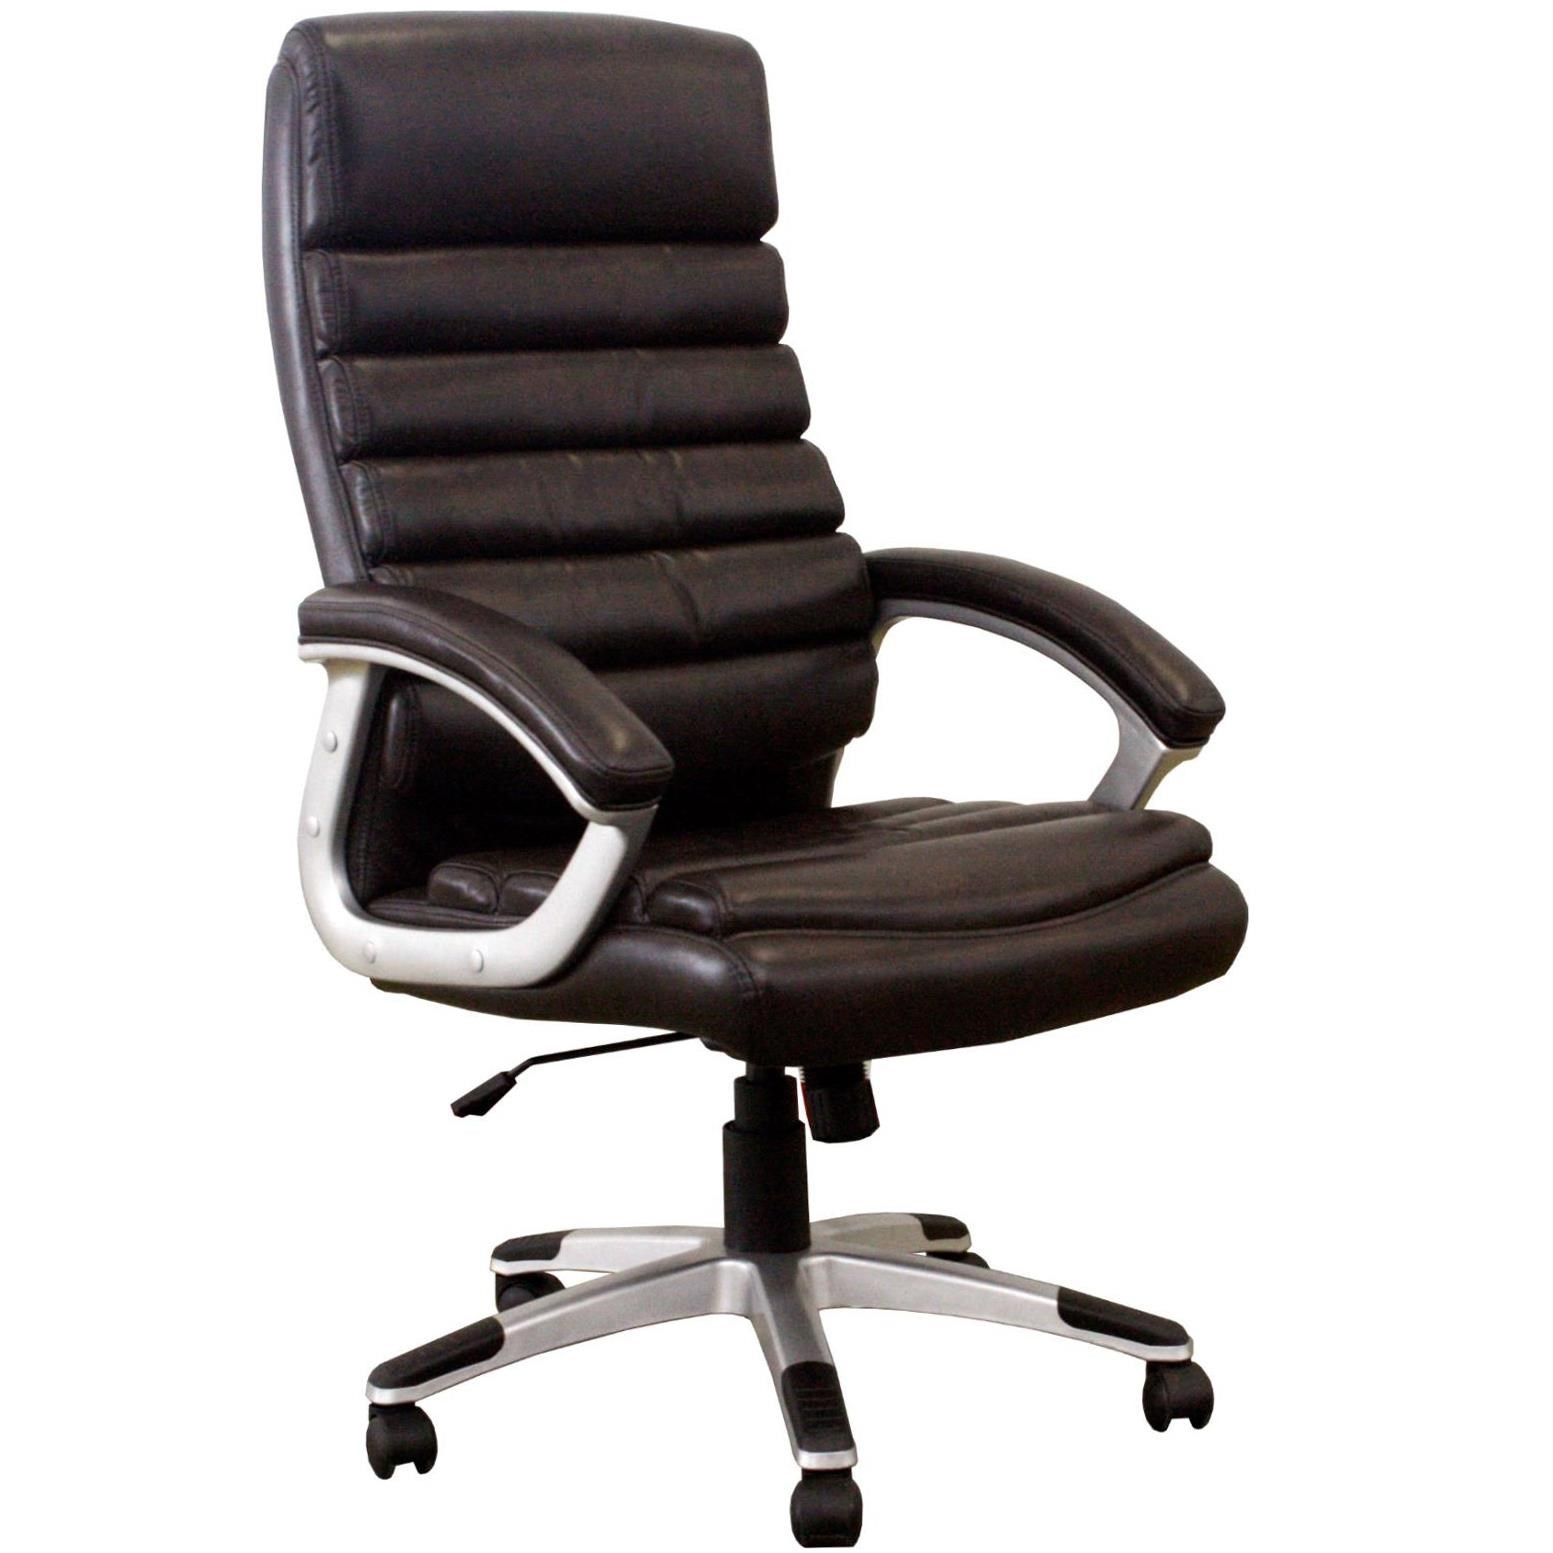 Parker Living Desk Chairs Desk Chair with Ribbed Seat and